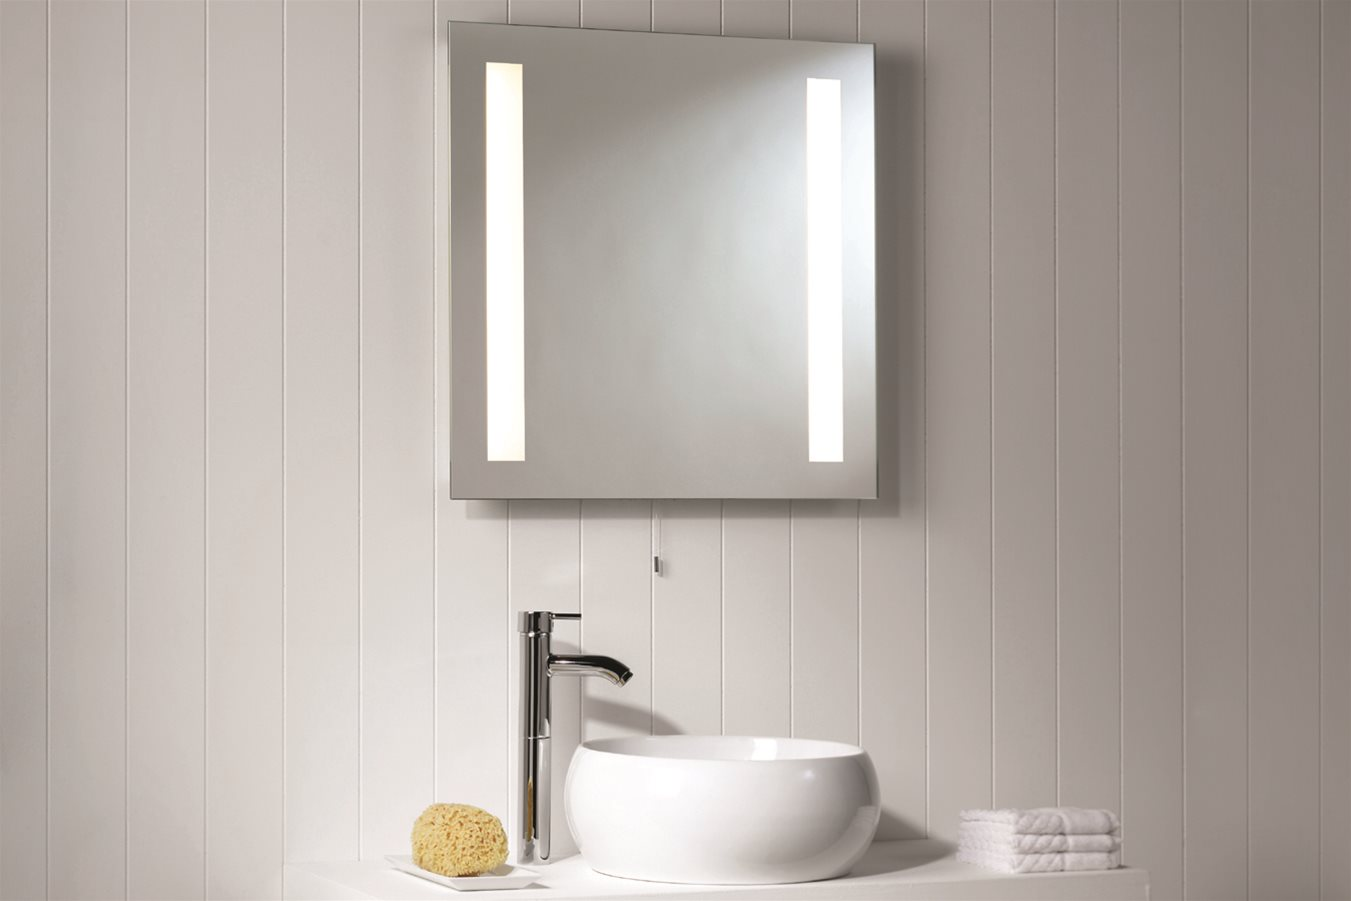 Illuminated Mirror Range